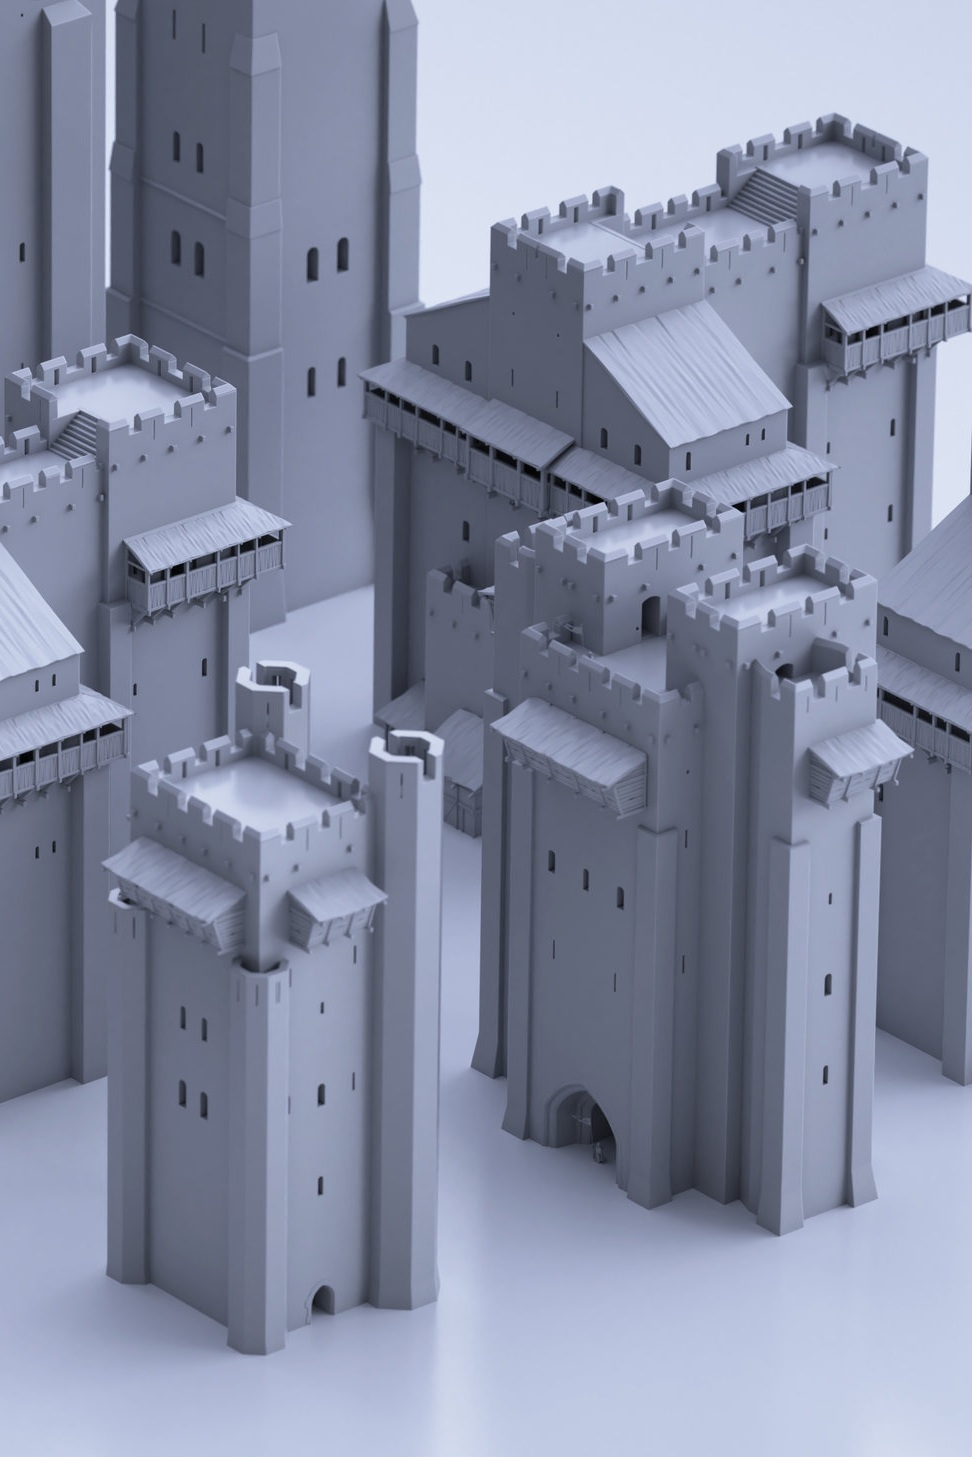 BUILDINGS - Includes fully modular sets of medieval castles and towers